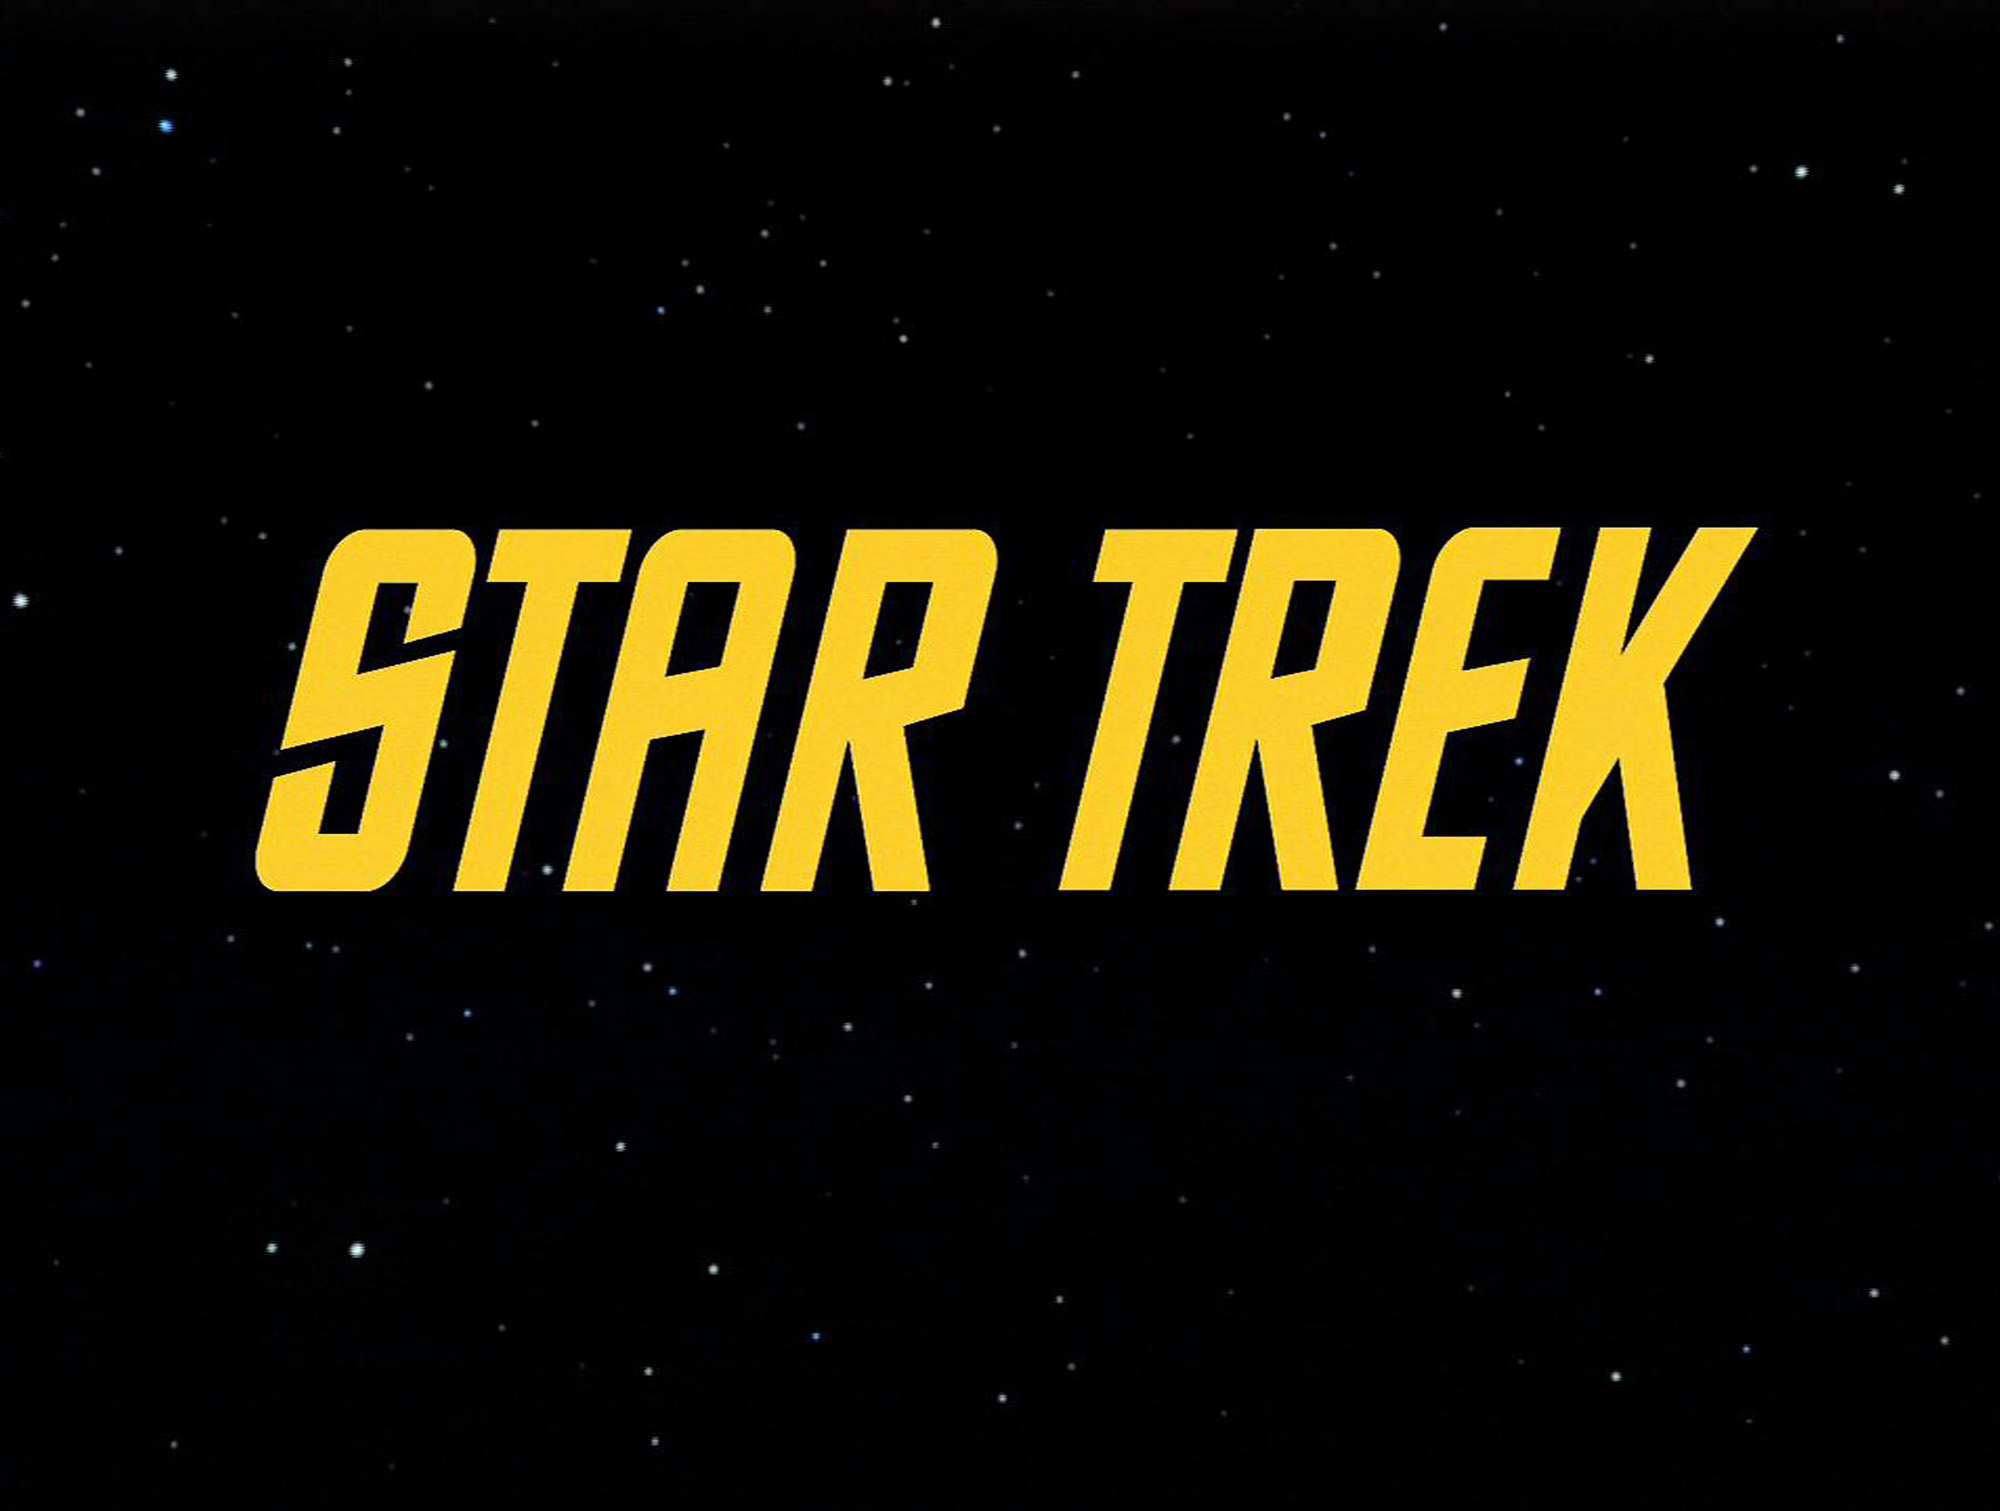 First Female Director in Franchise History to Direct Next Star Trek Film